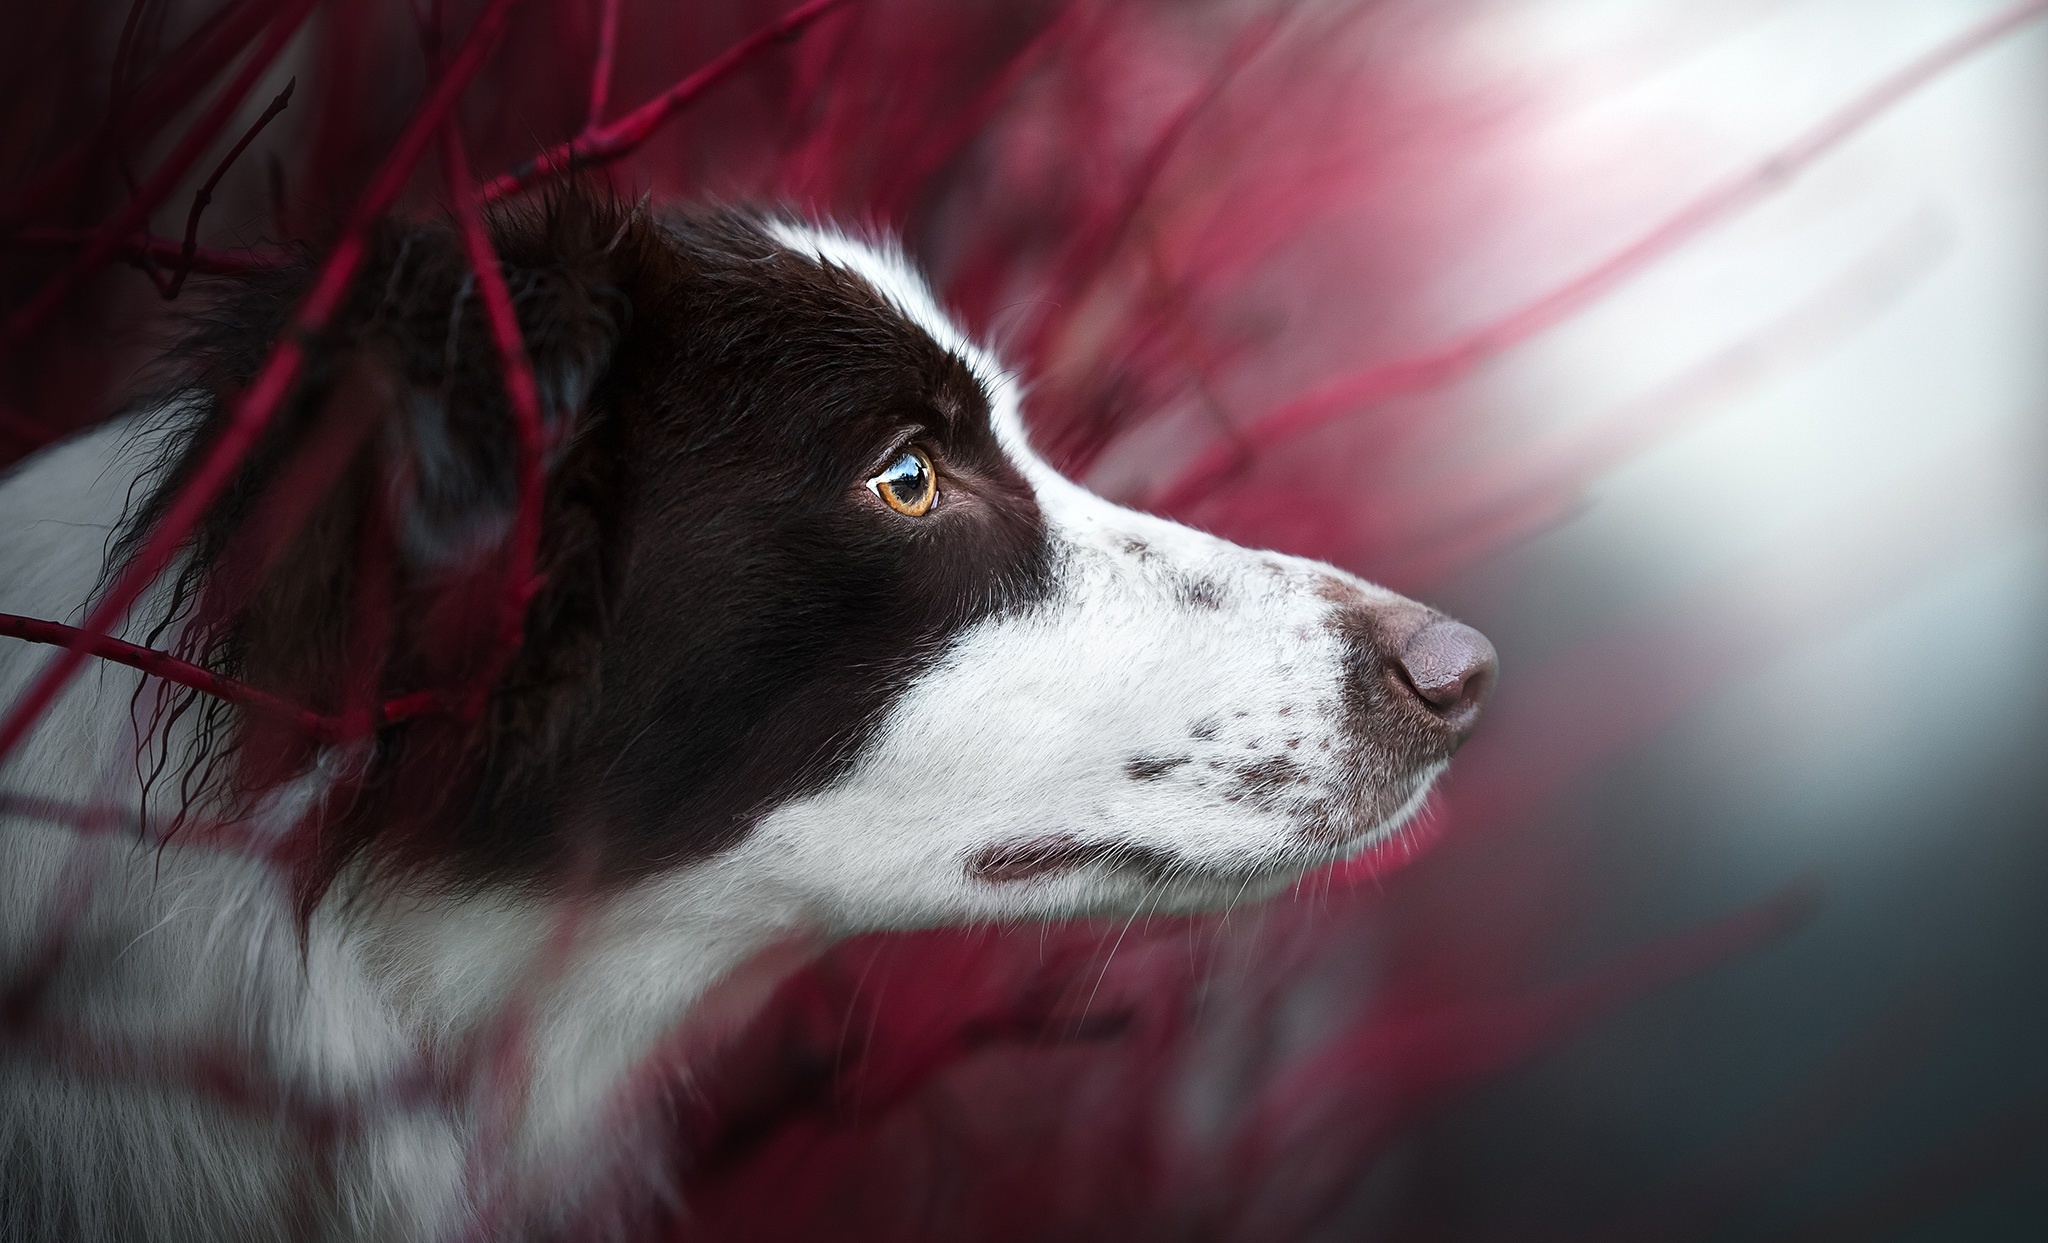 Image: Dog, border collie, breed, snout, watching, blurred background